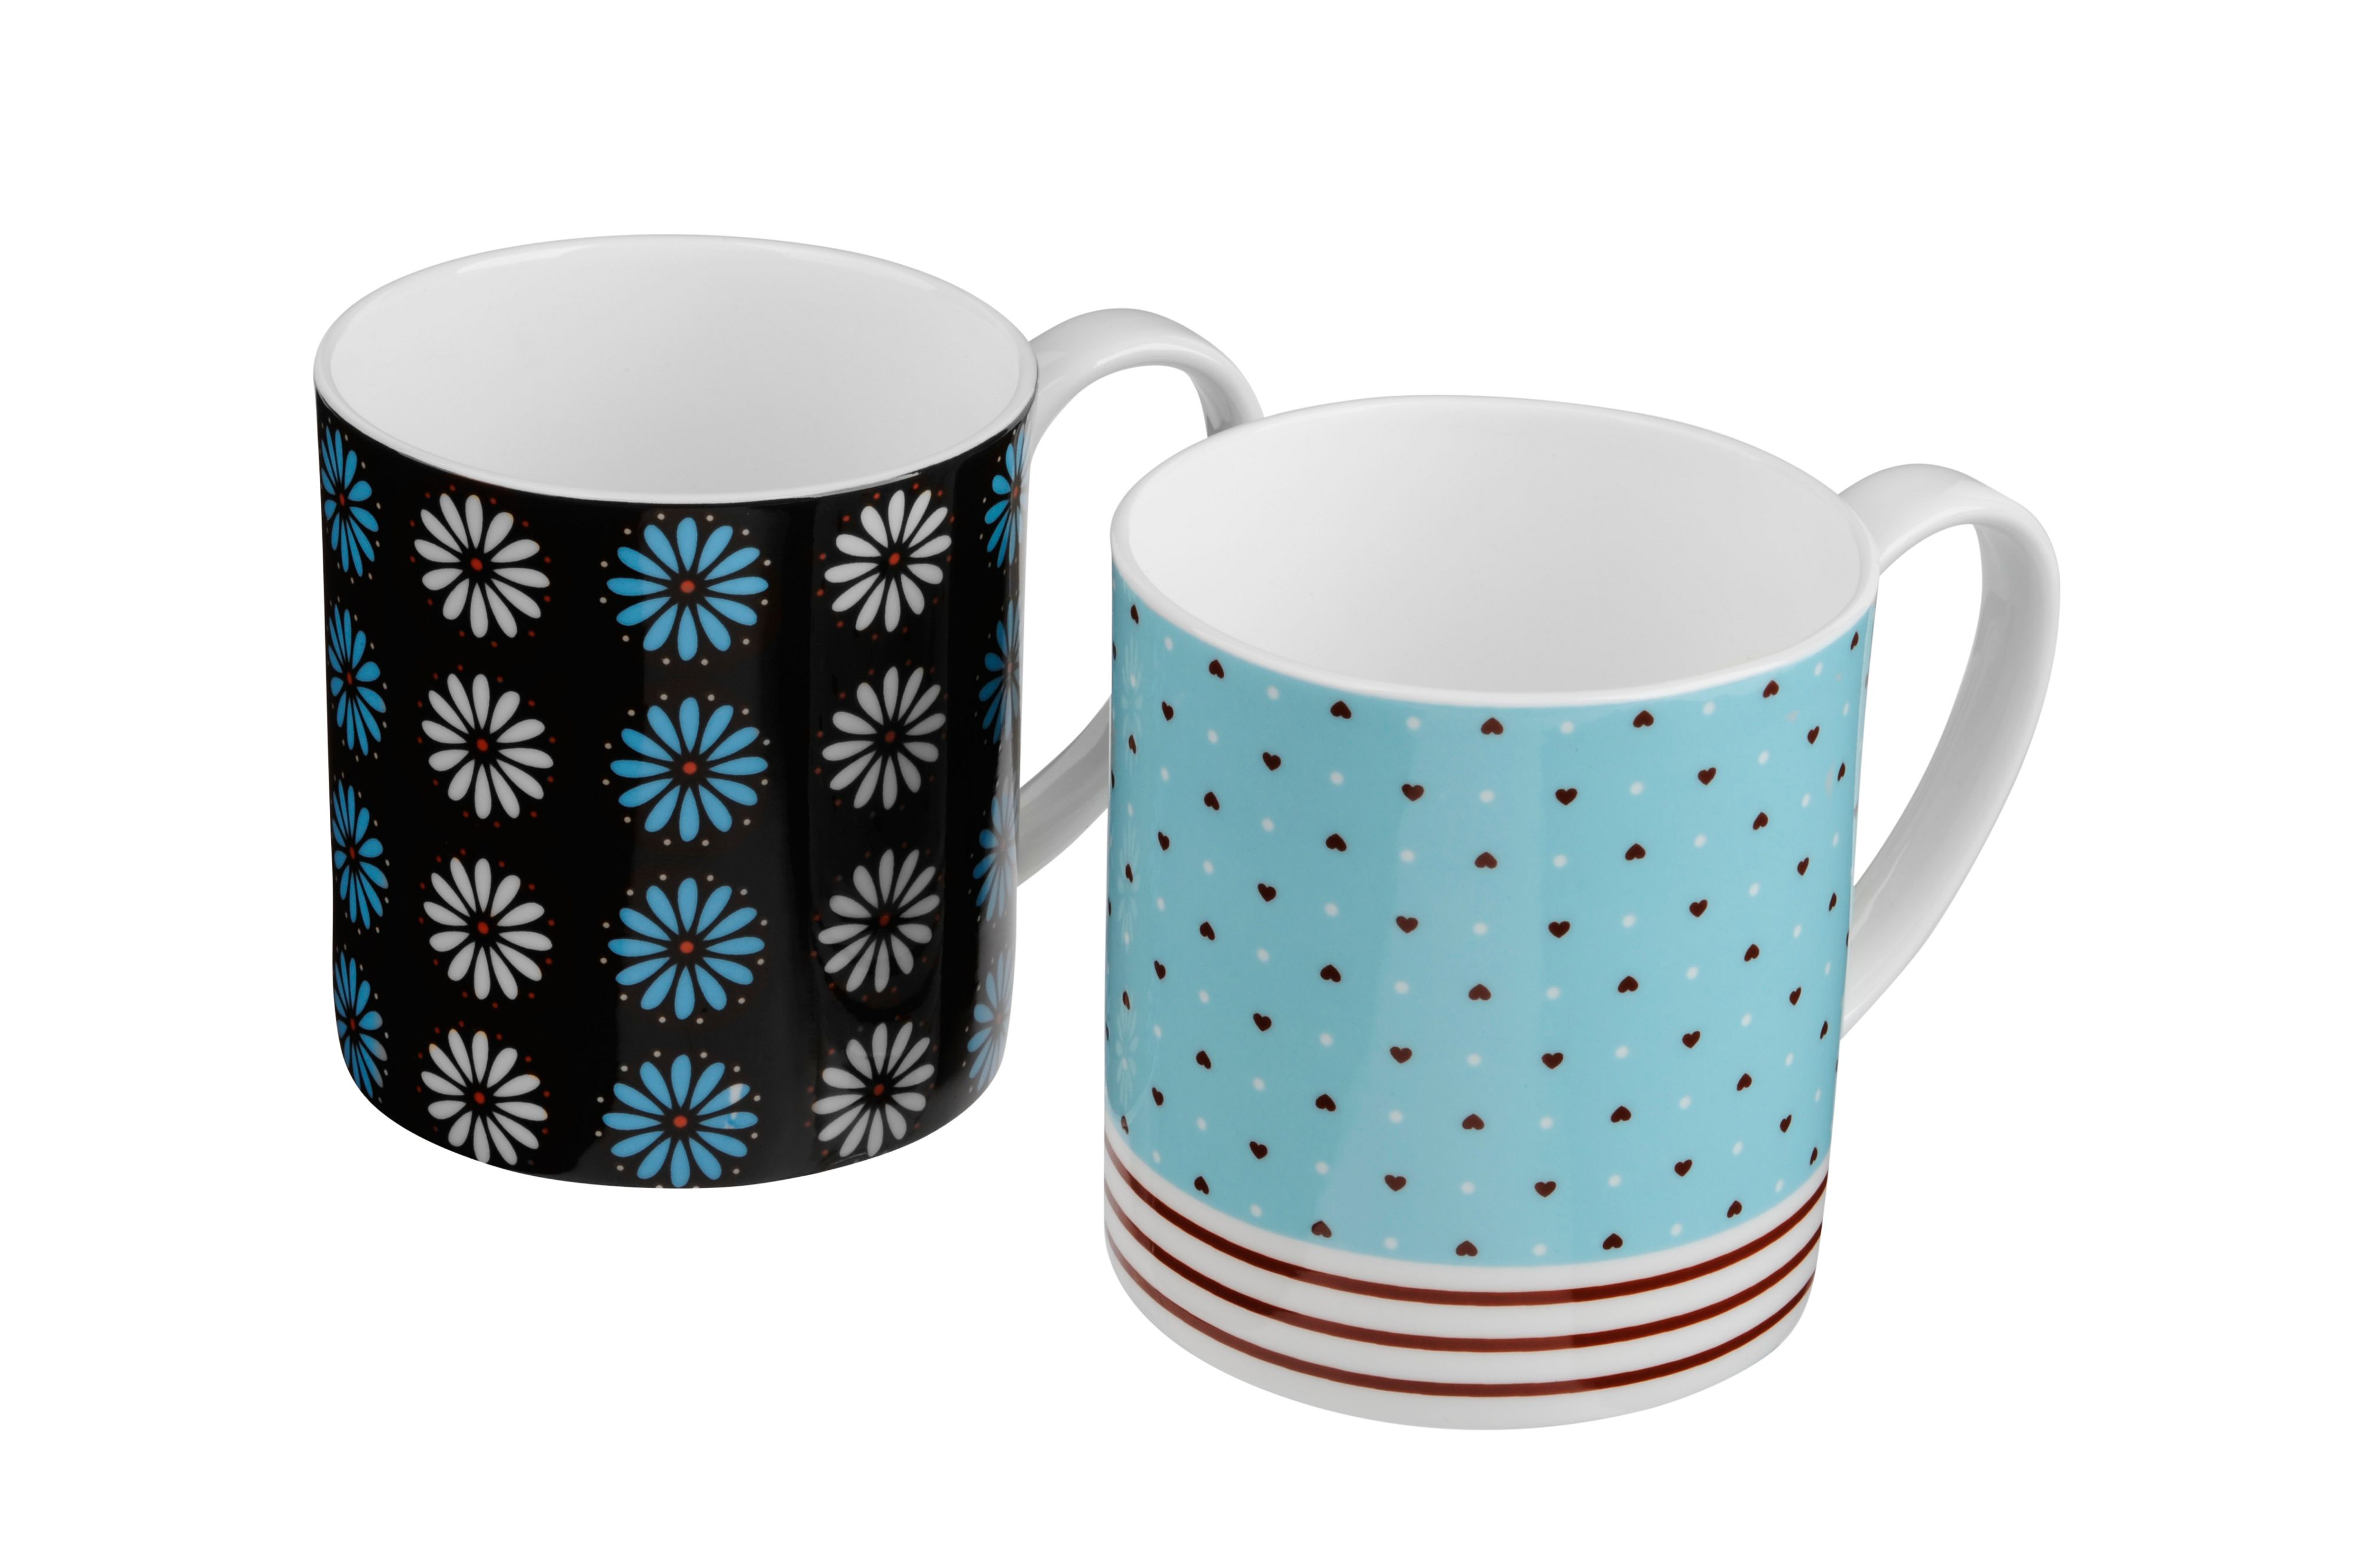 Pair of bone china Oceania mugs